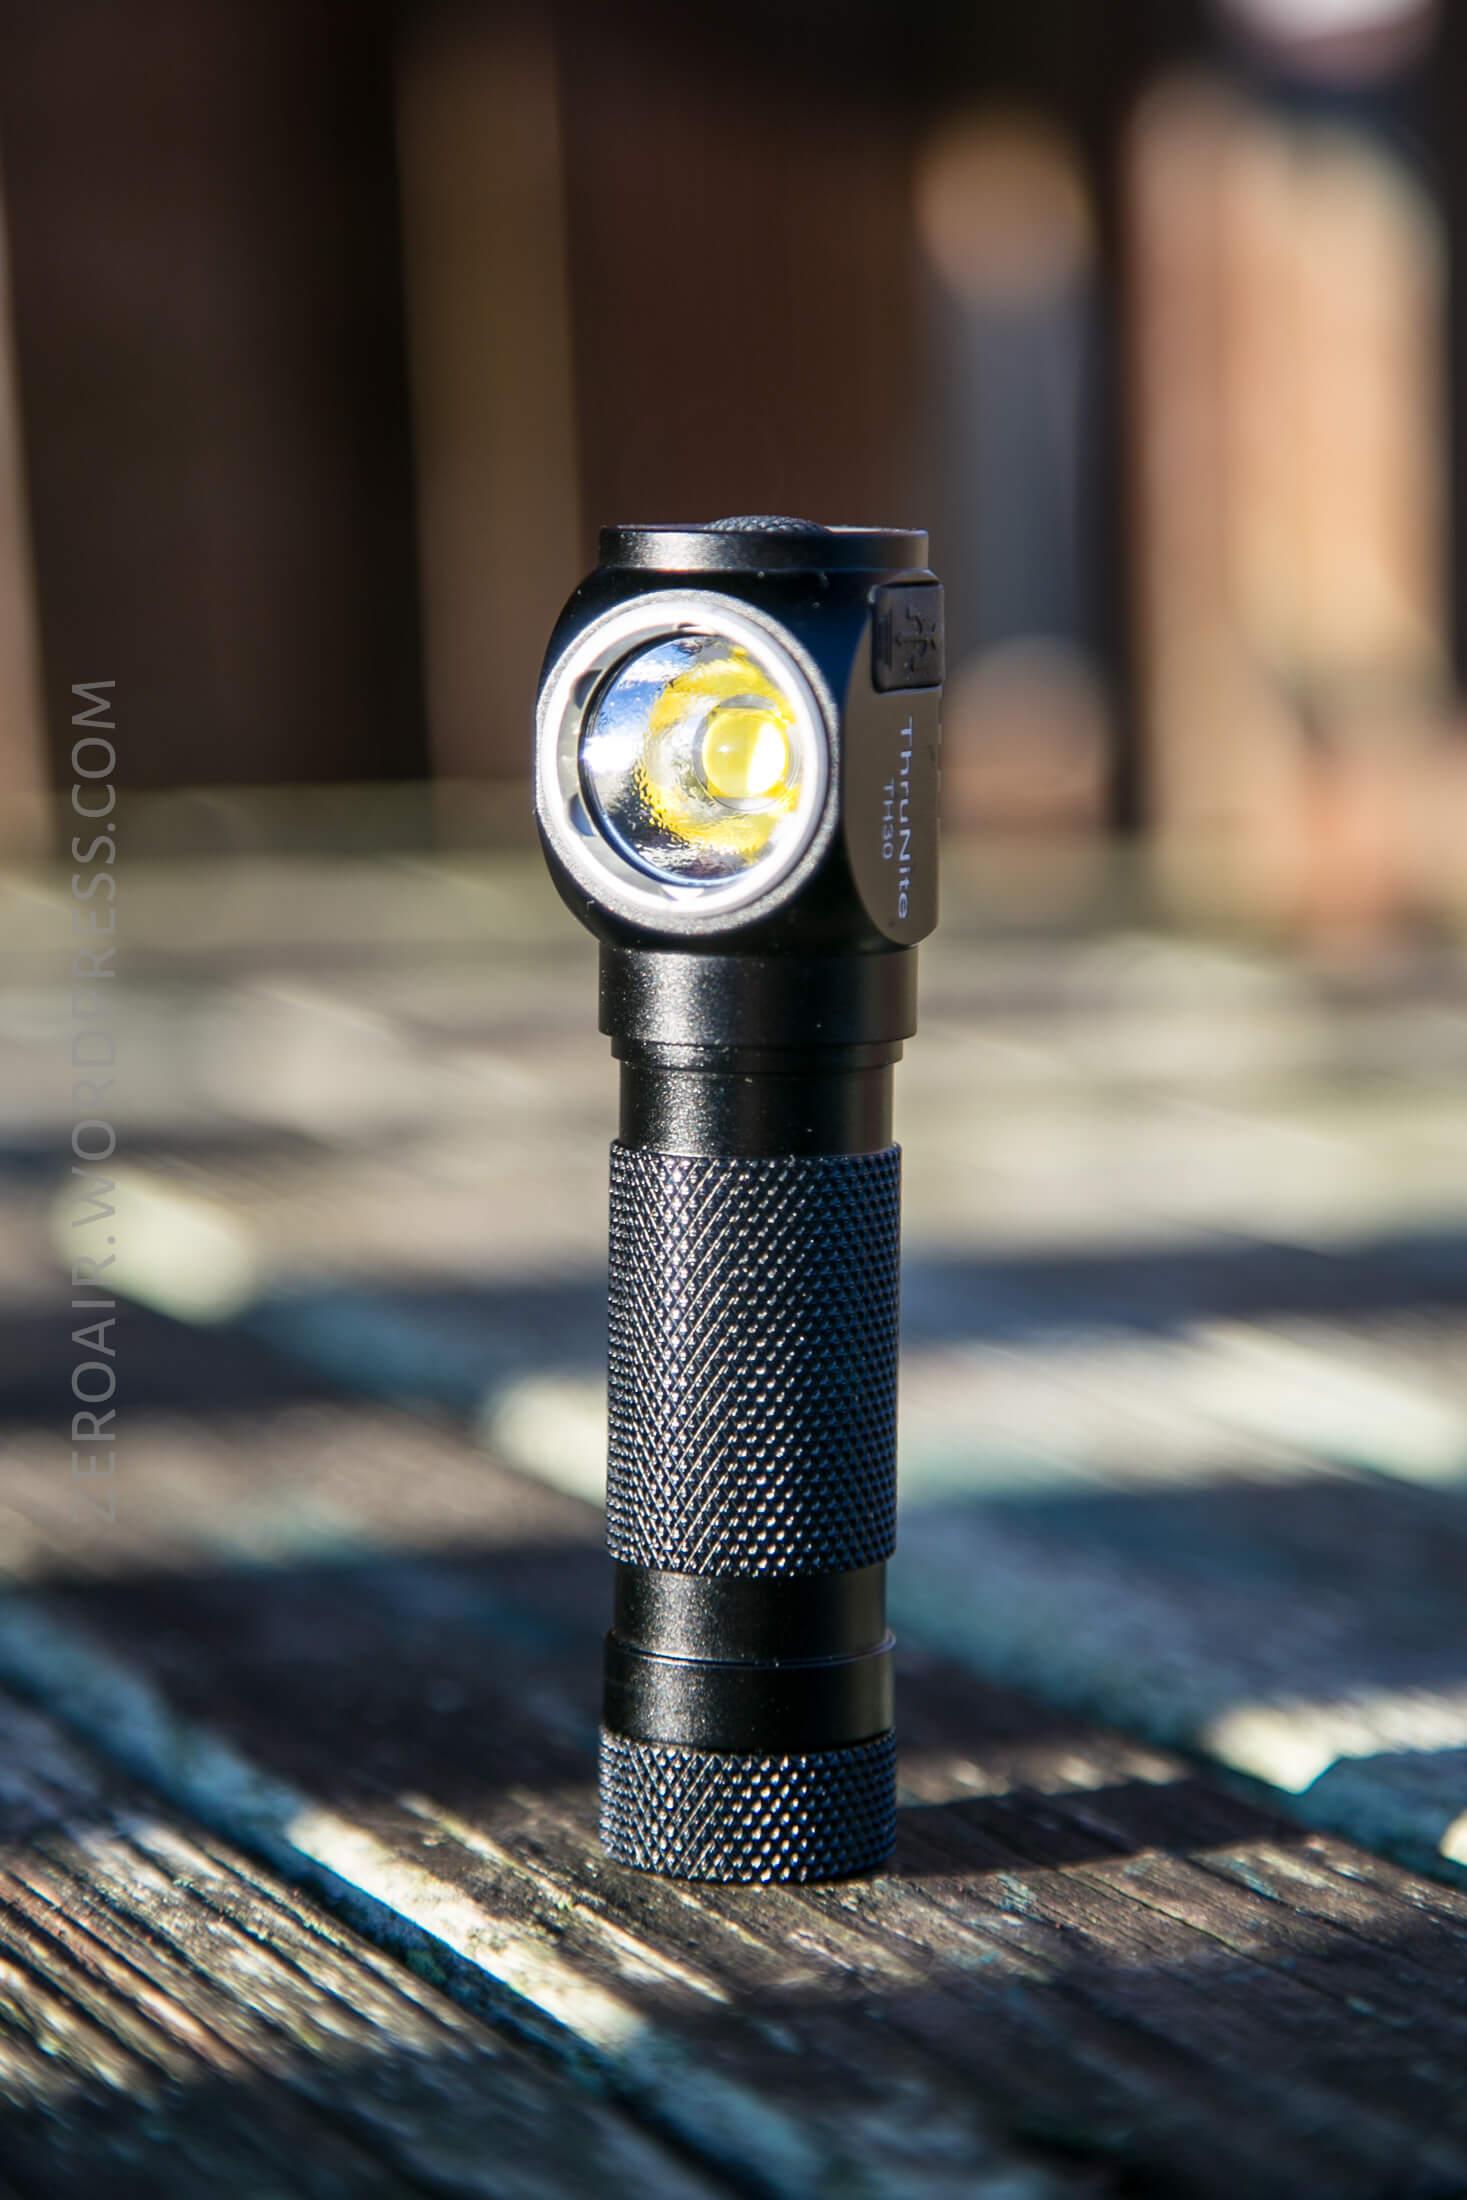 36_zeroair_reviews_thrunite_th30_headlamp.jpg